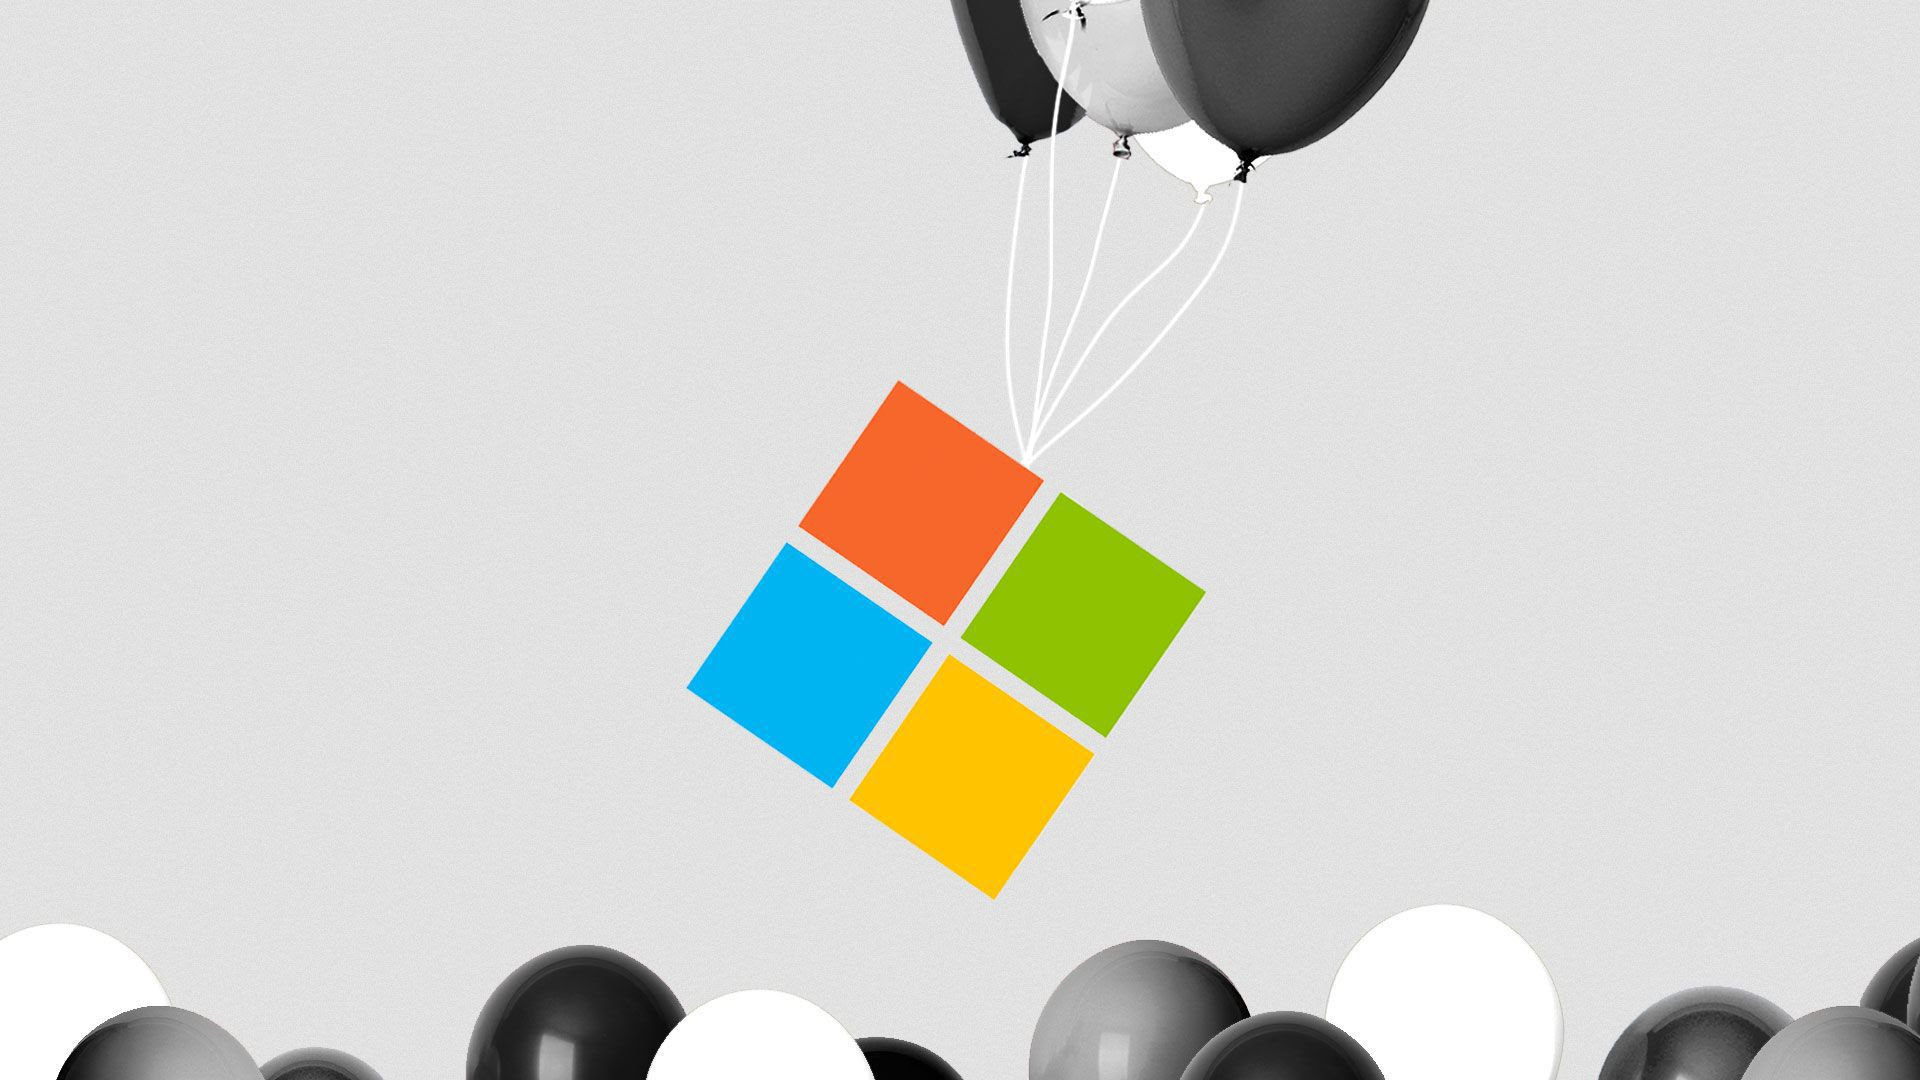 An image of the Microsoft logo being lifted by balloons.